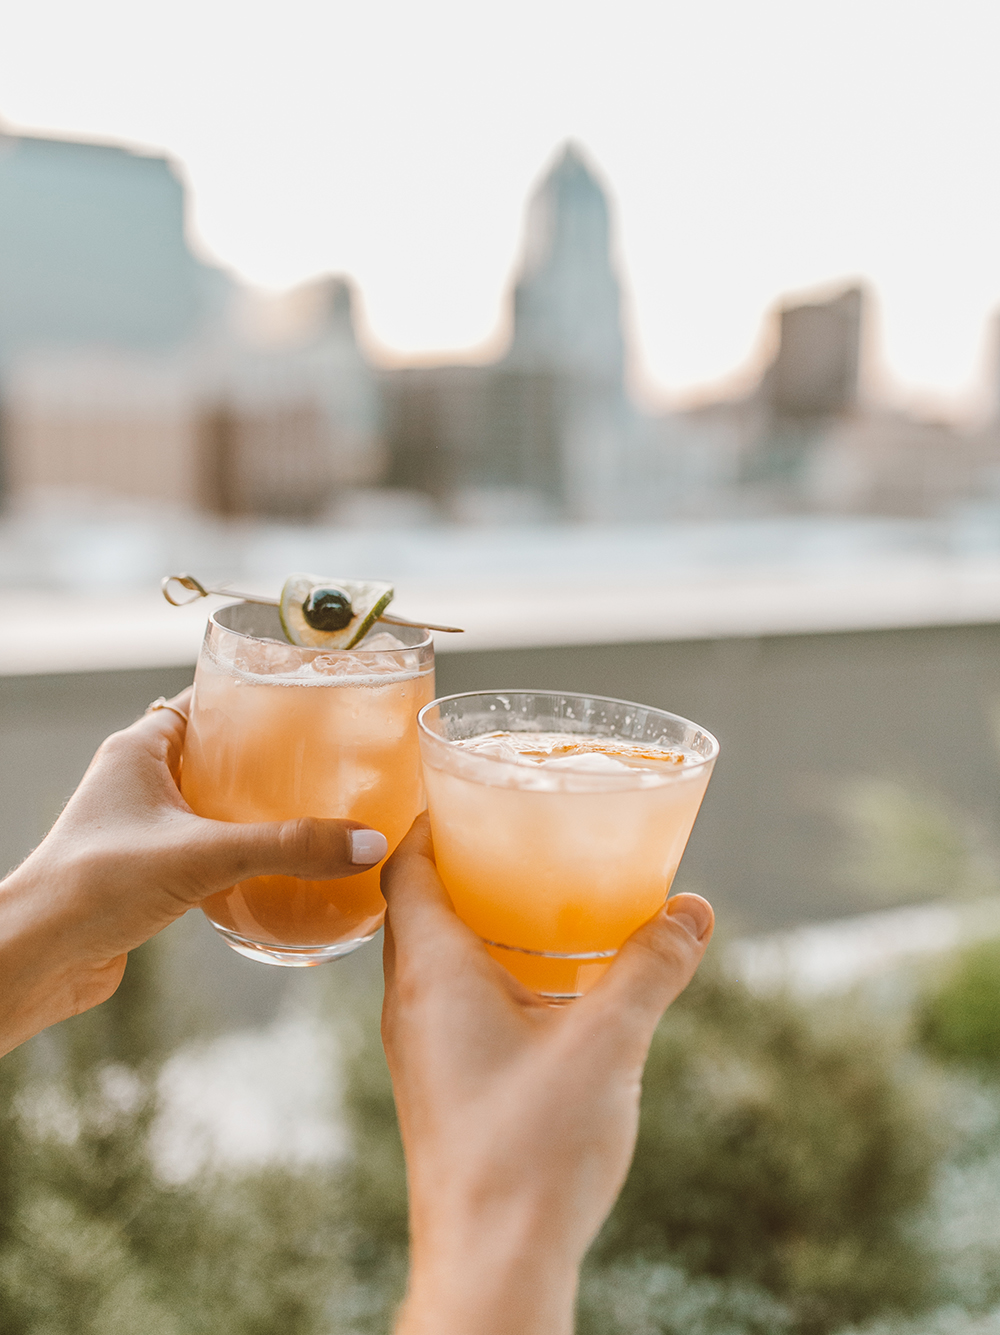 livvyland-blog-olivia-watson-austin-texas-lifestyle-blogger-fairmont-hotel-atx-downtown-rooftop-pool-cocktail